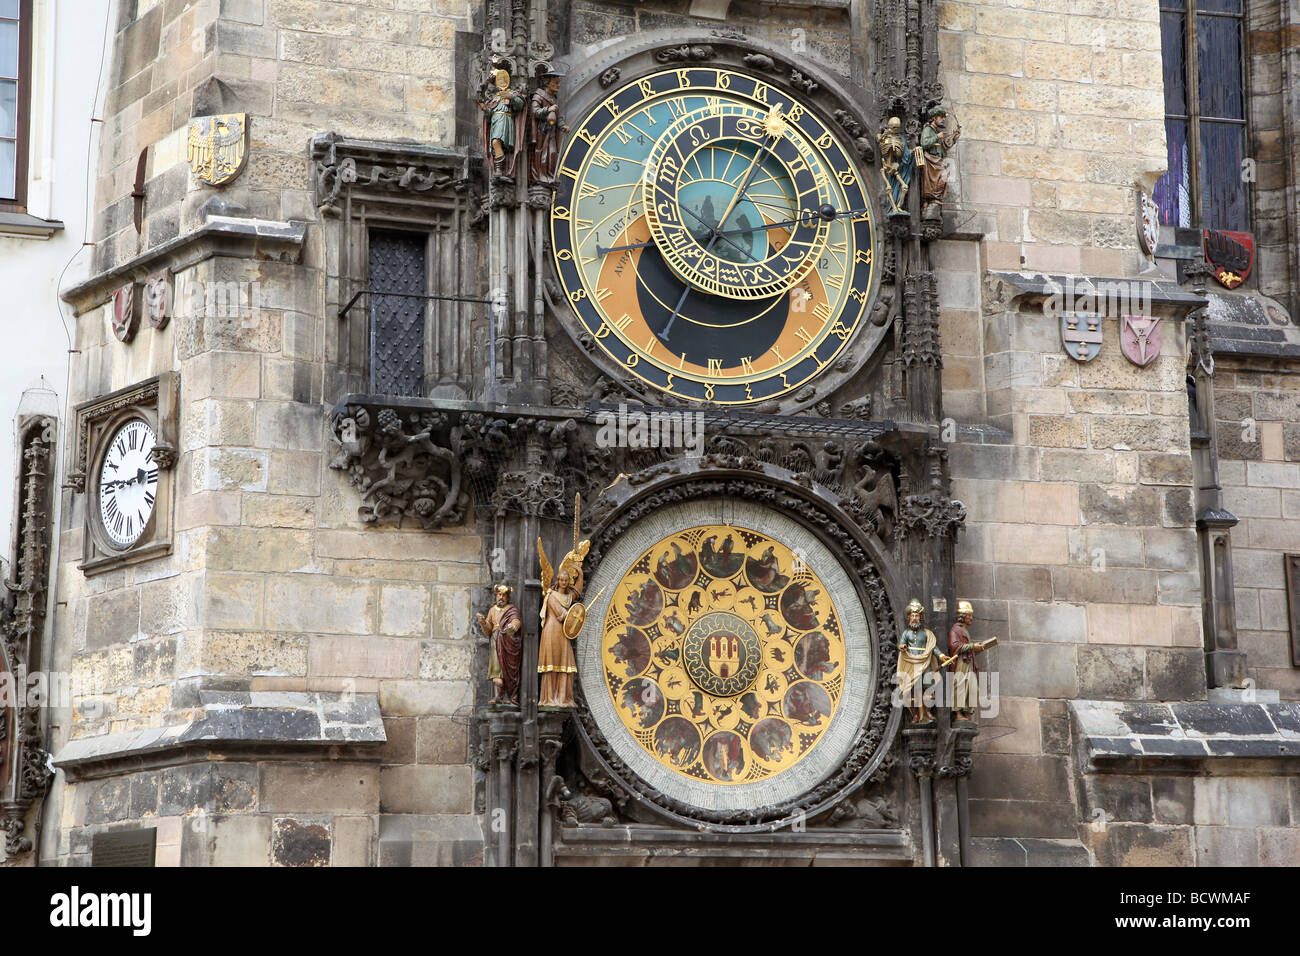 Astronomical Orioj clock in the old town square, Prague. - Stock Image